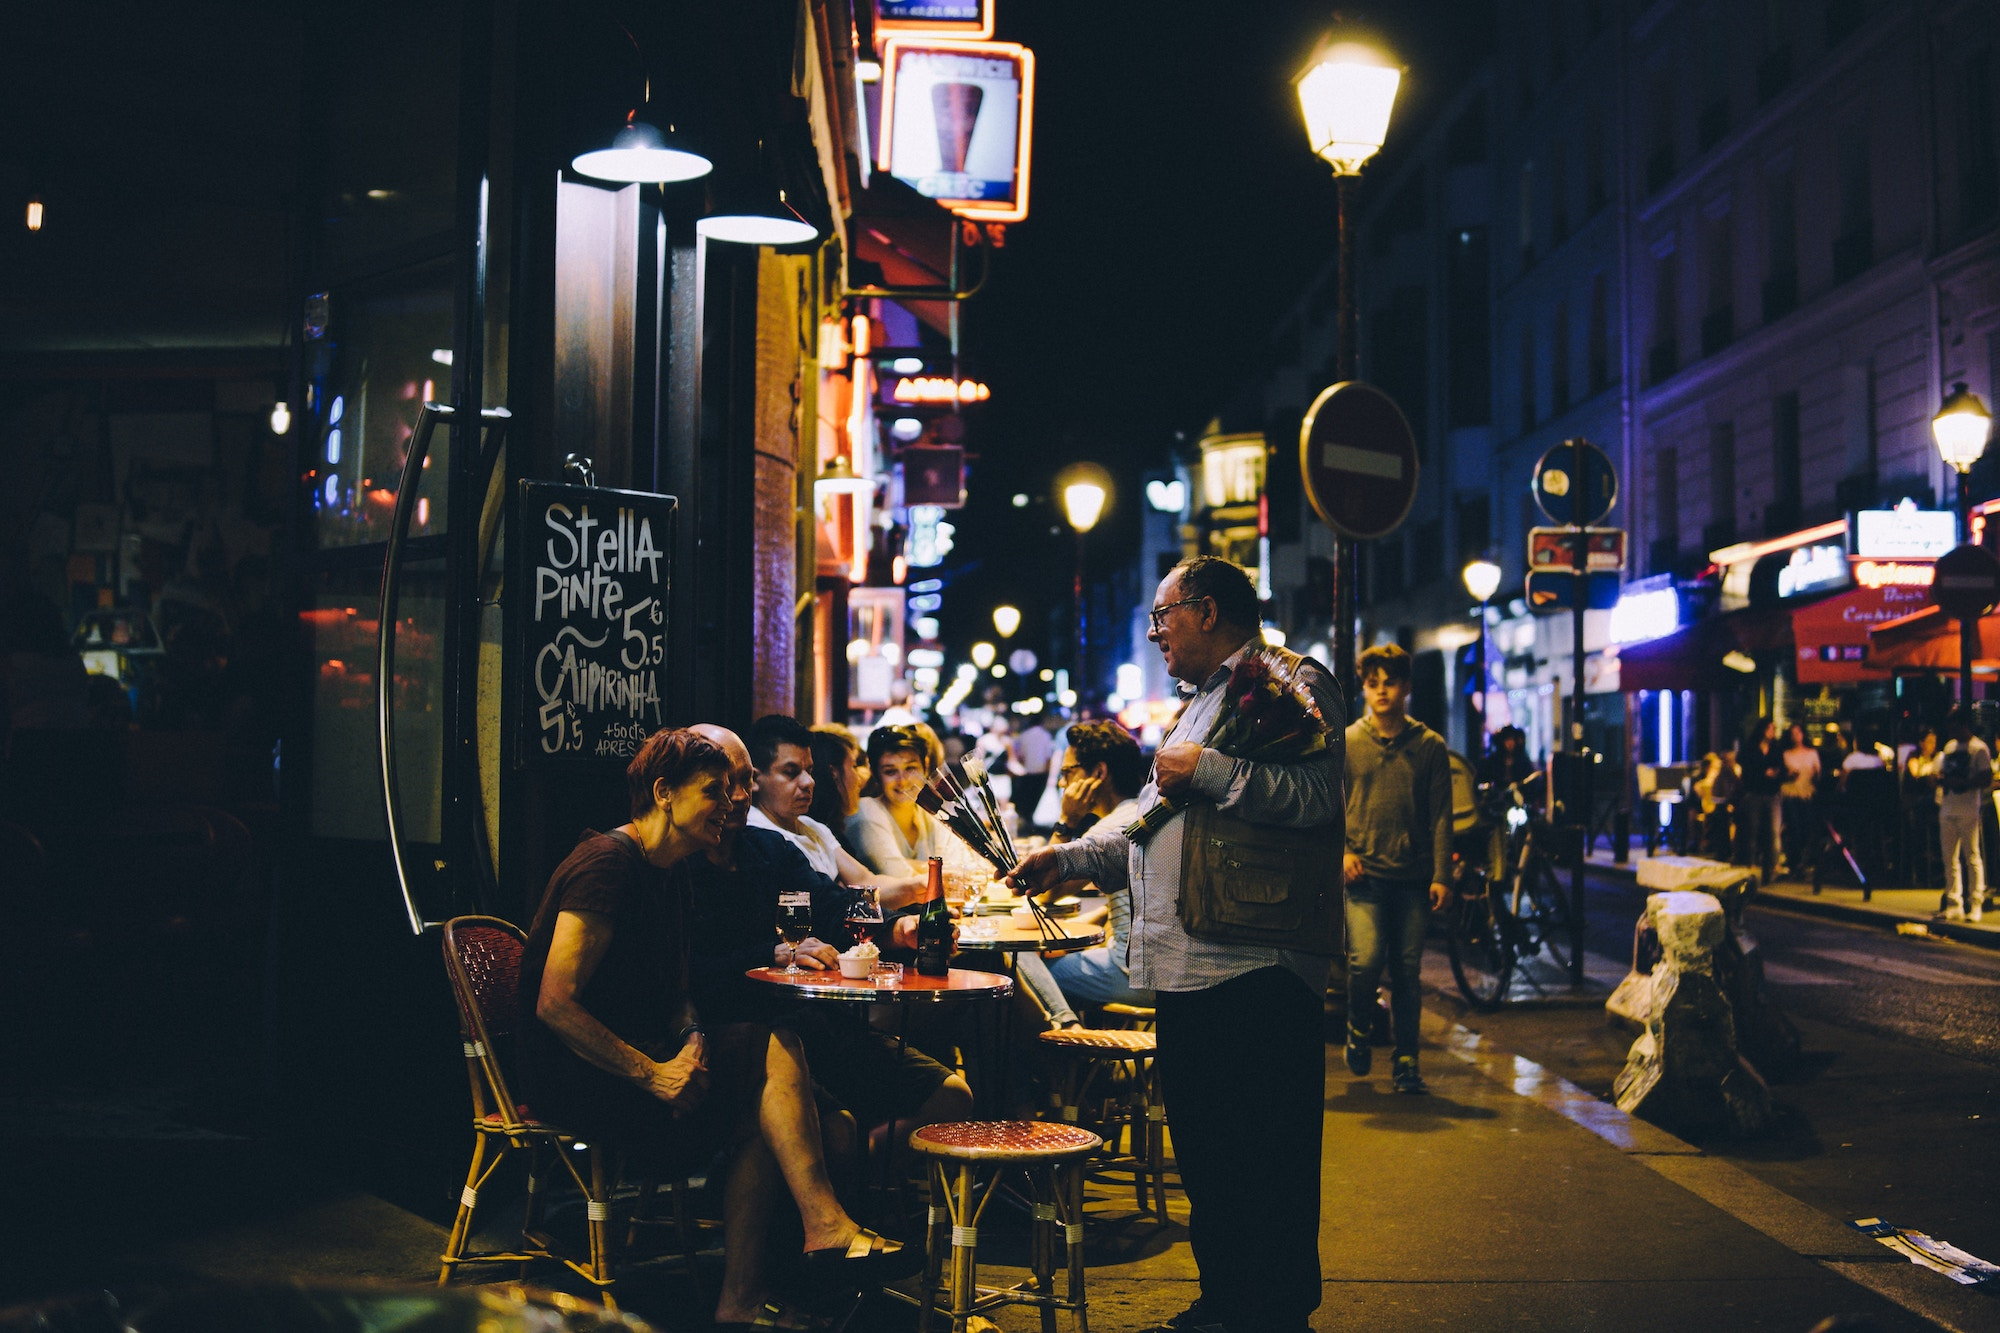 Paris podcast host Oliver Gee tells us how to see Paris on summer nights, and that includes cocktails on a café terrace.